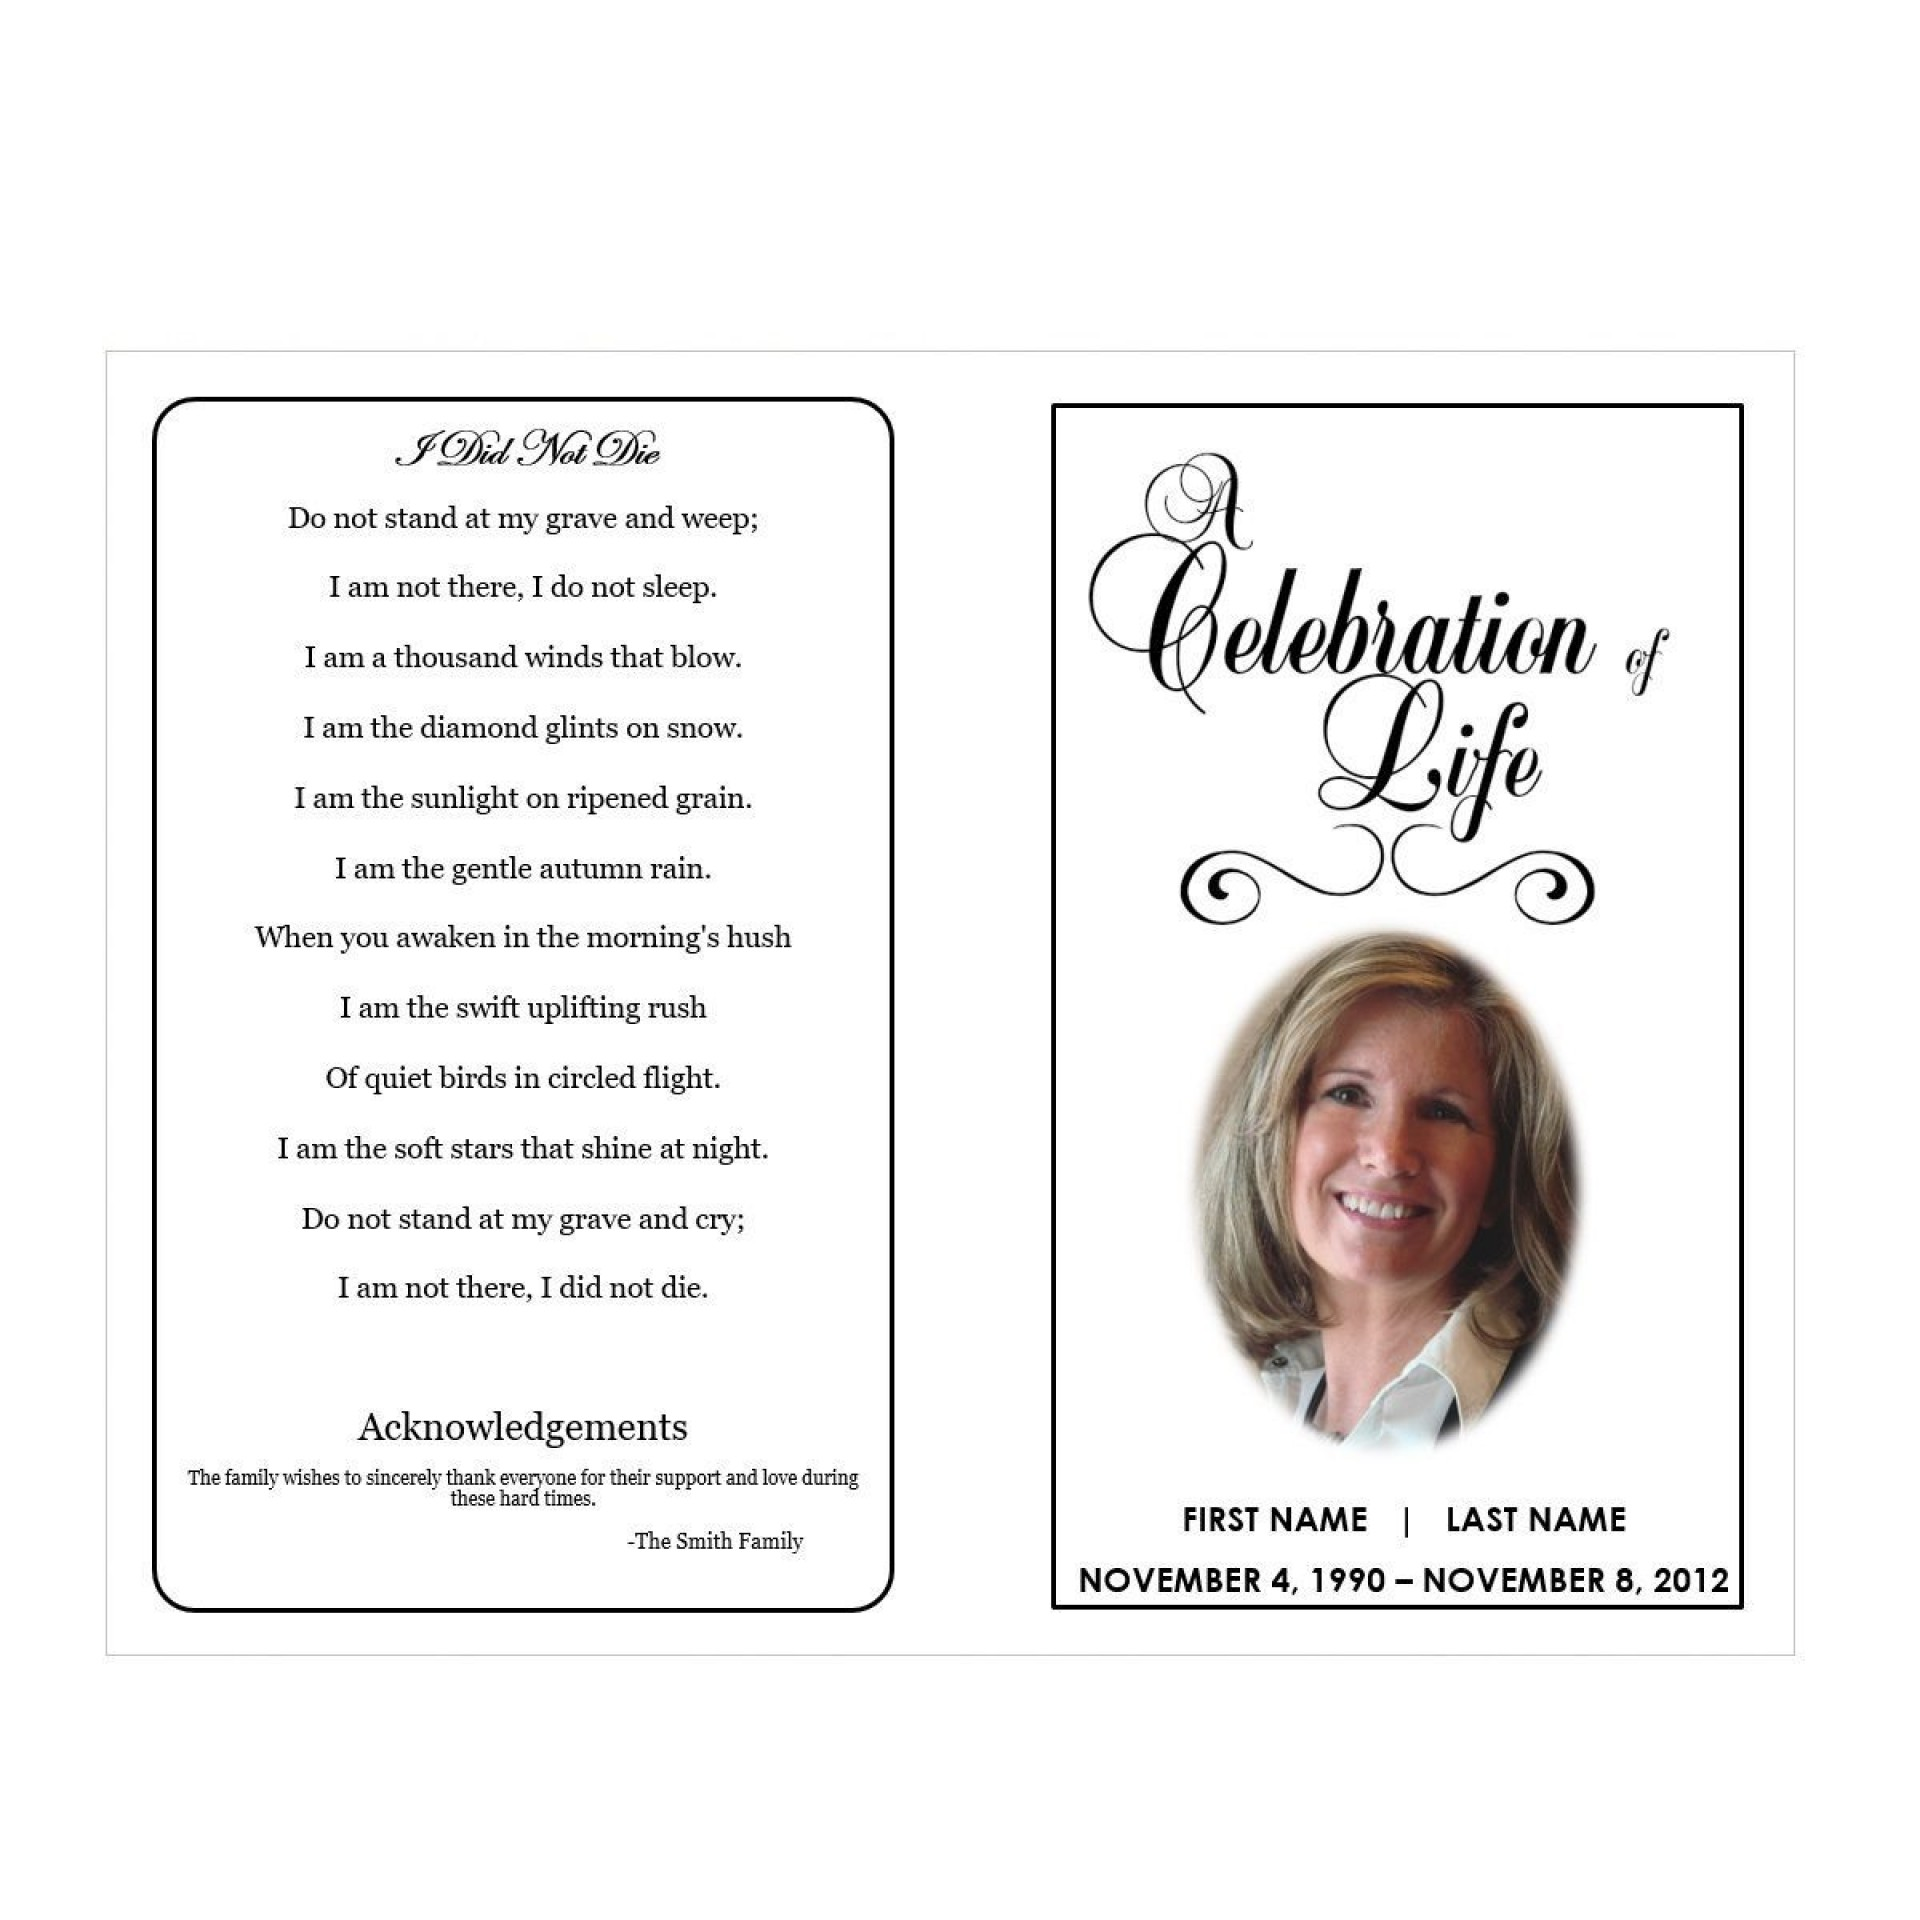 003 Impressive Celebration Of Life Word Template Free Highest Quality  Program1920